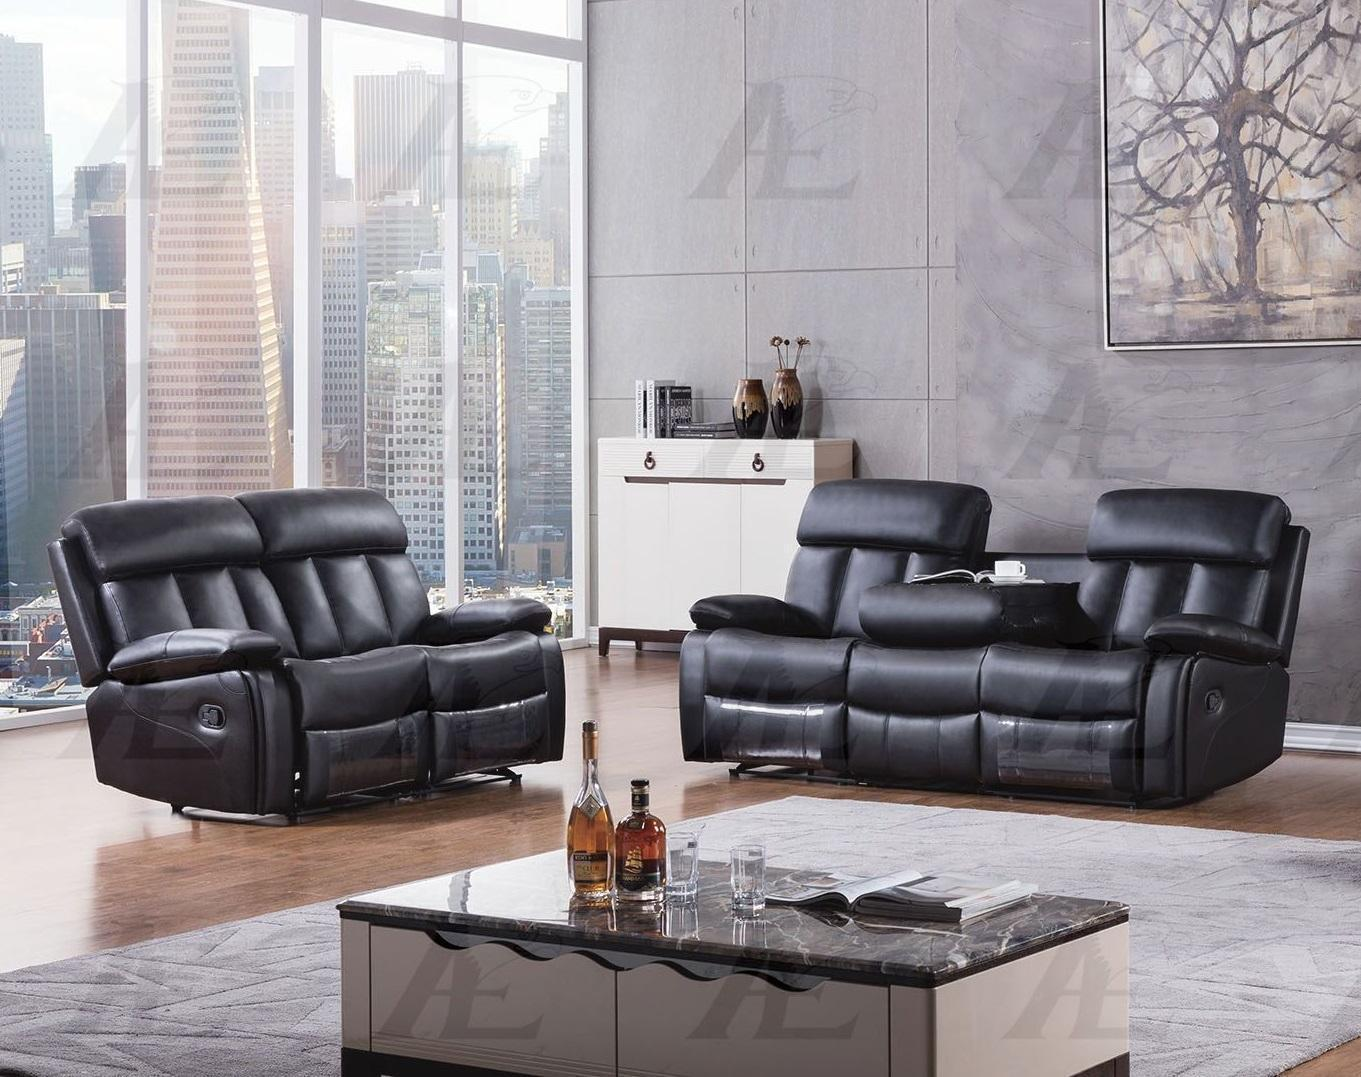 American Eagle AE-D825 Contemporary Black Faux Leather Recliner Sofa Set in 2pcs